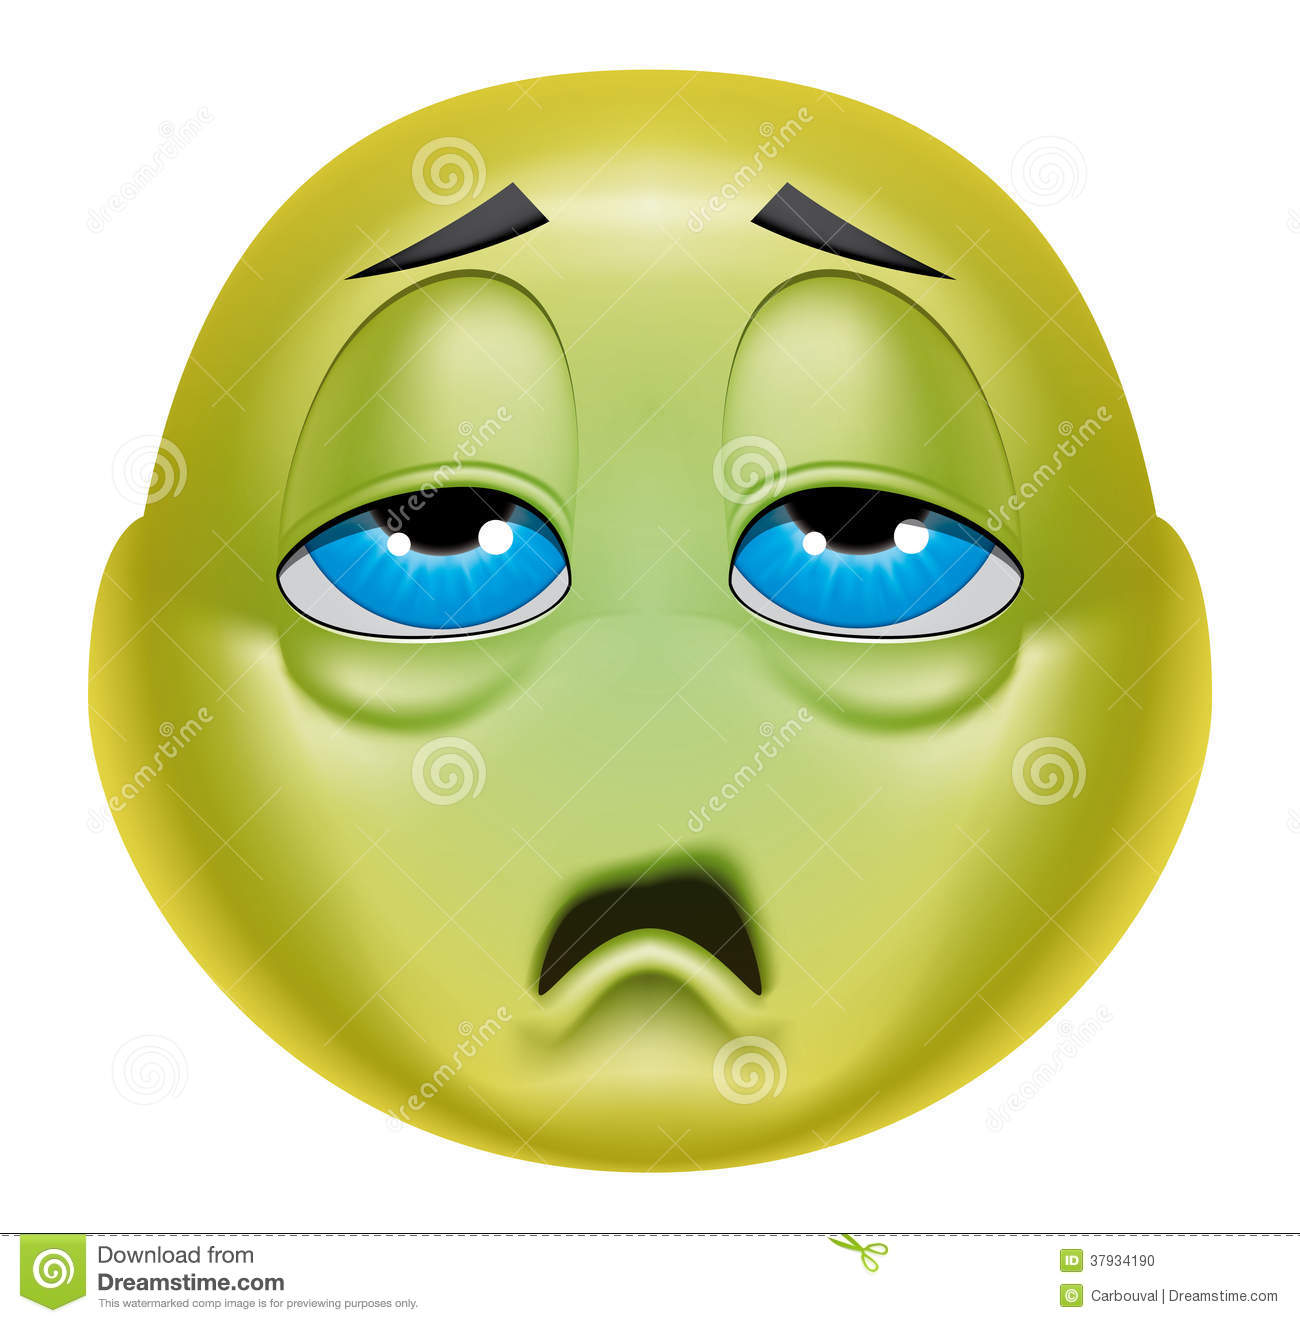 Image result for emoji sick, nauseated